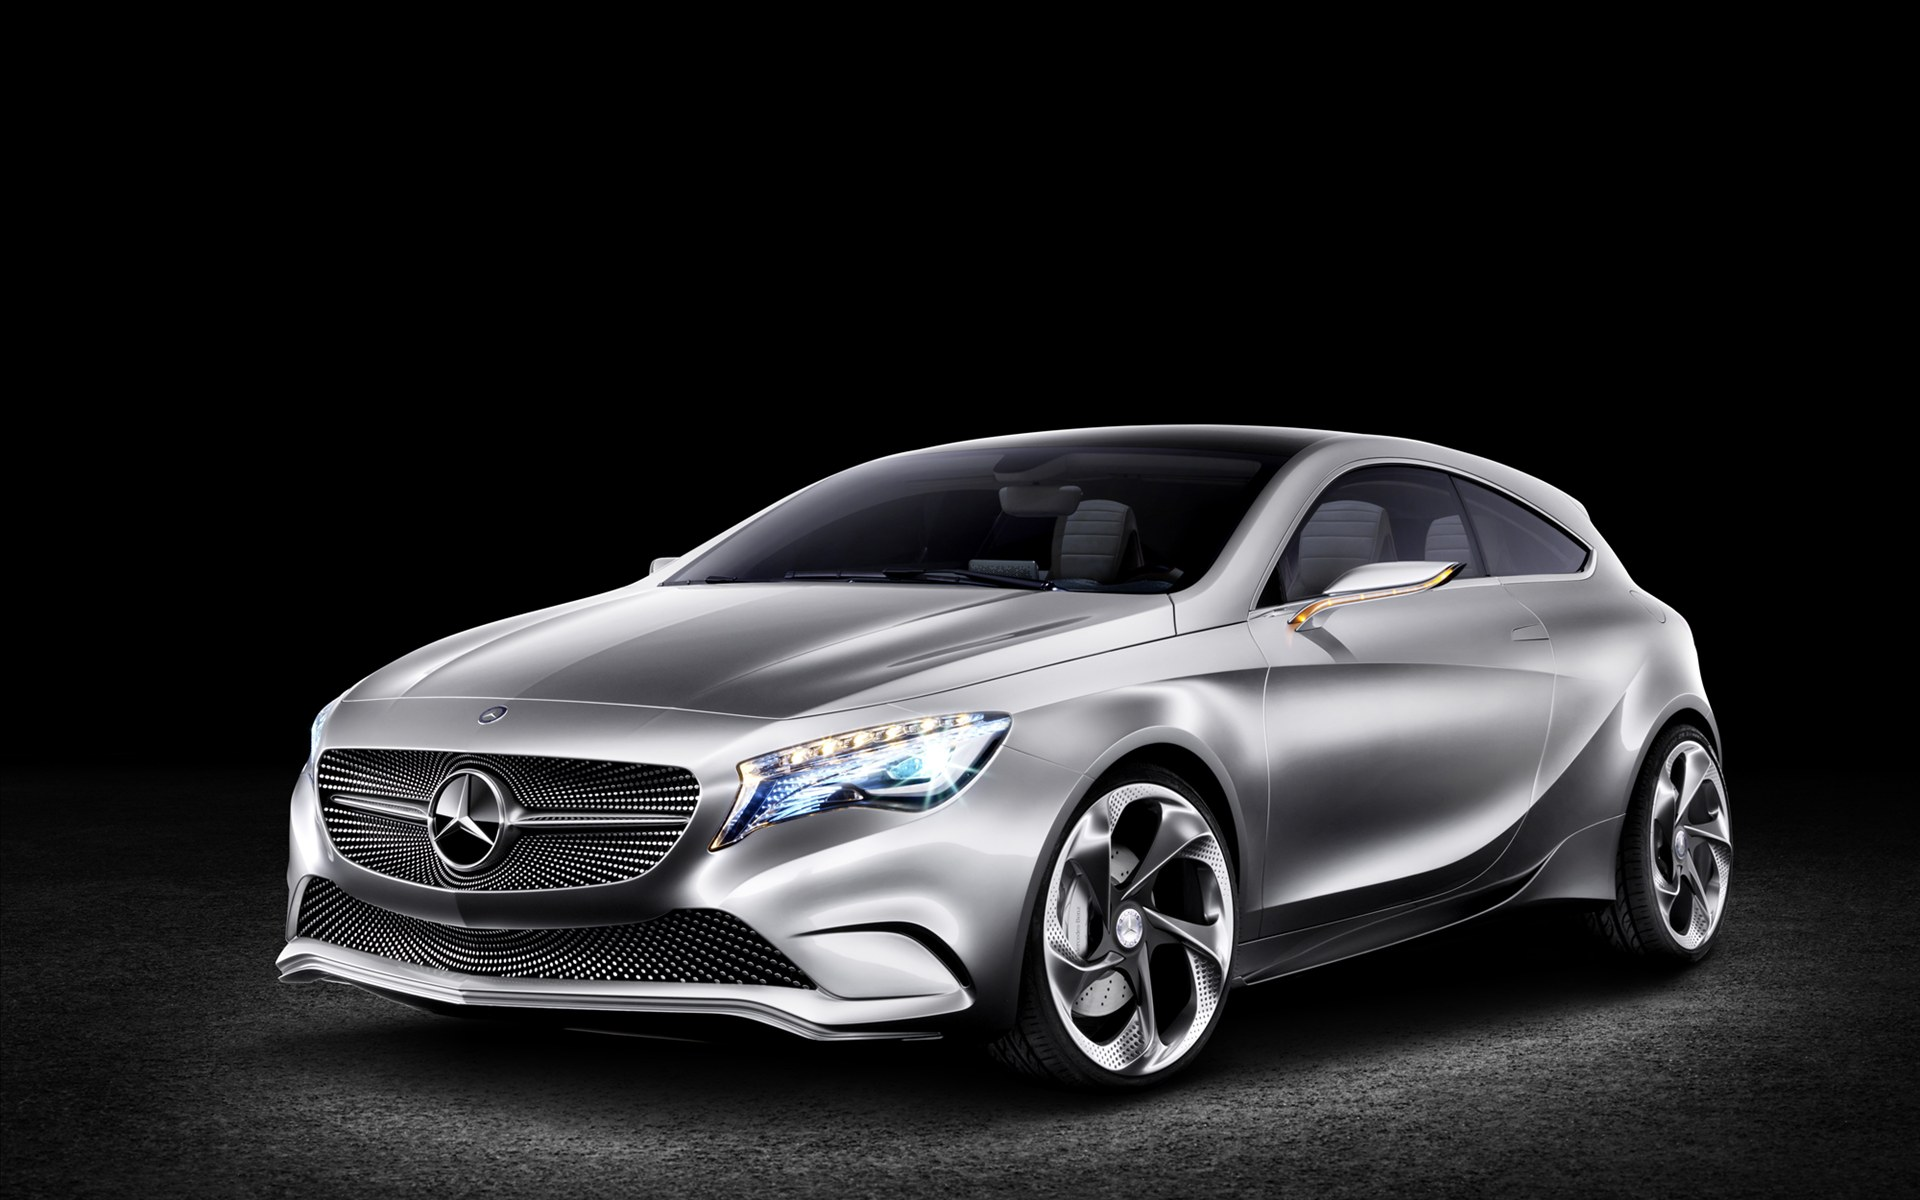 2011 mercedes benz concept a class wallpaper hd car. Black Bedroom Furniture Sets. Home Design Ideas